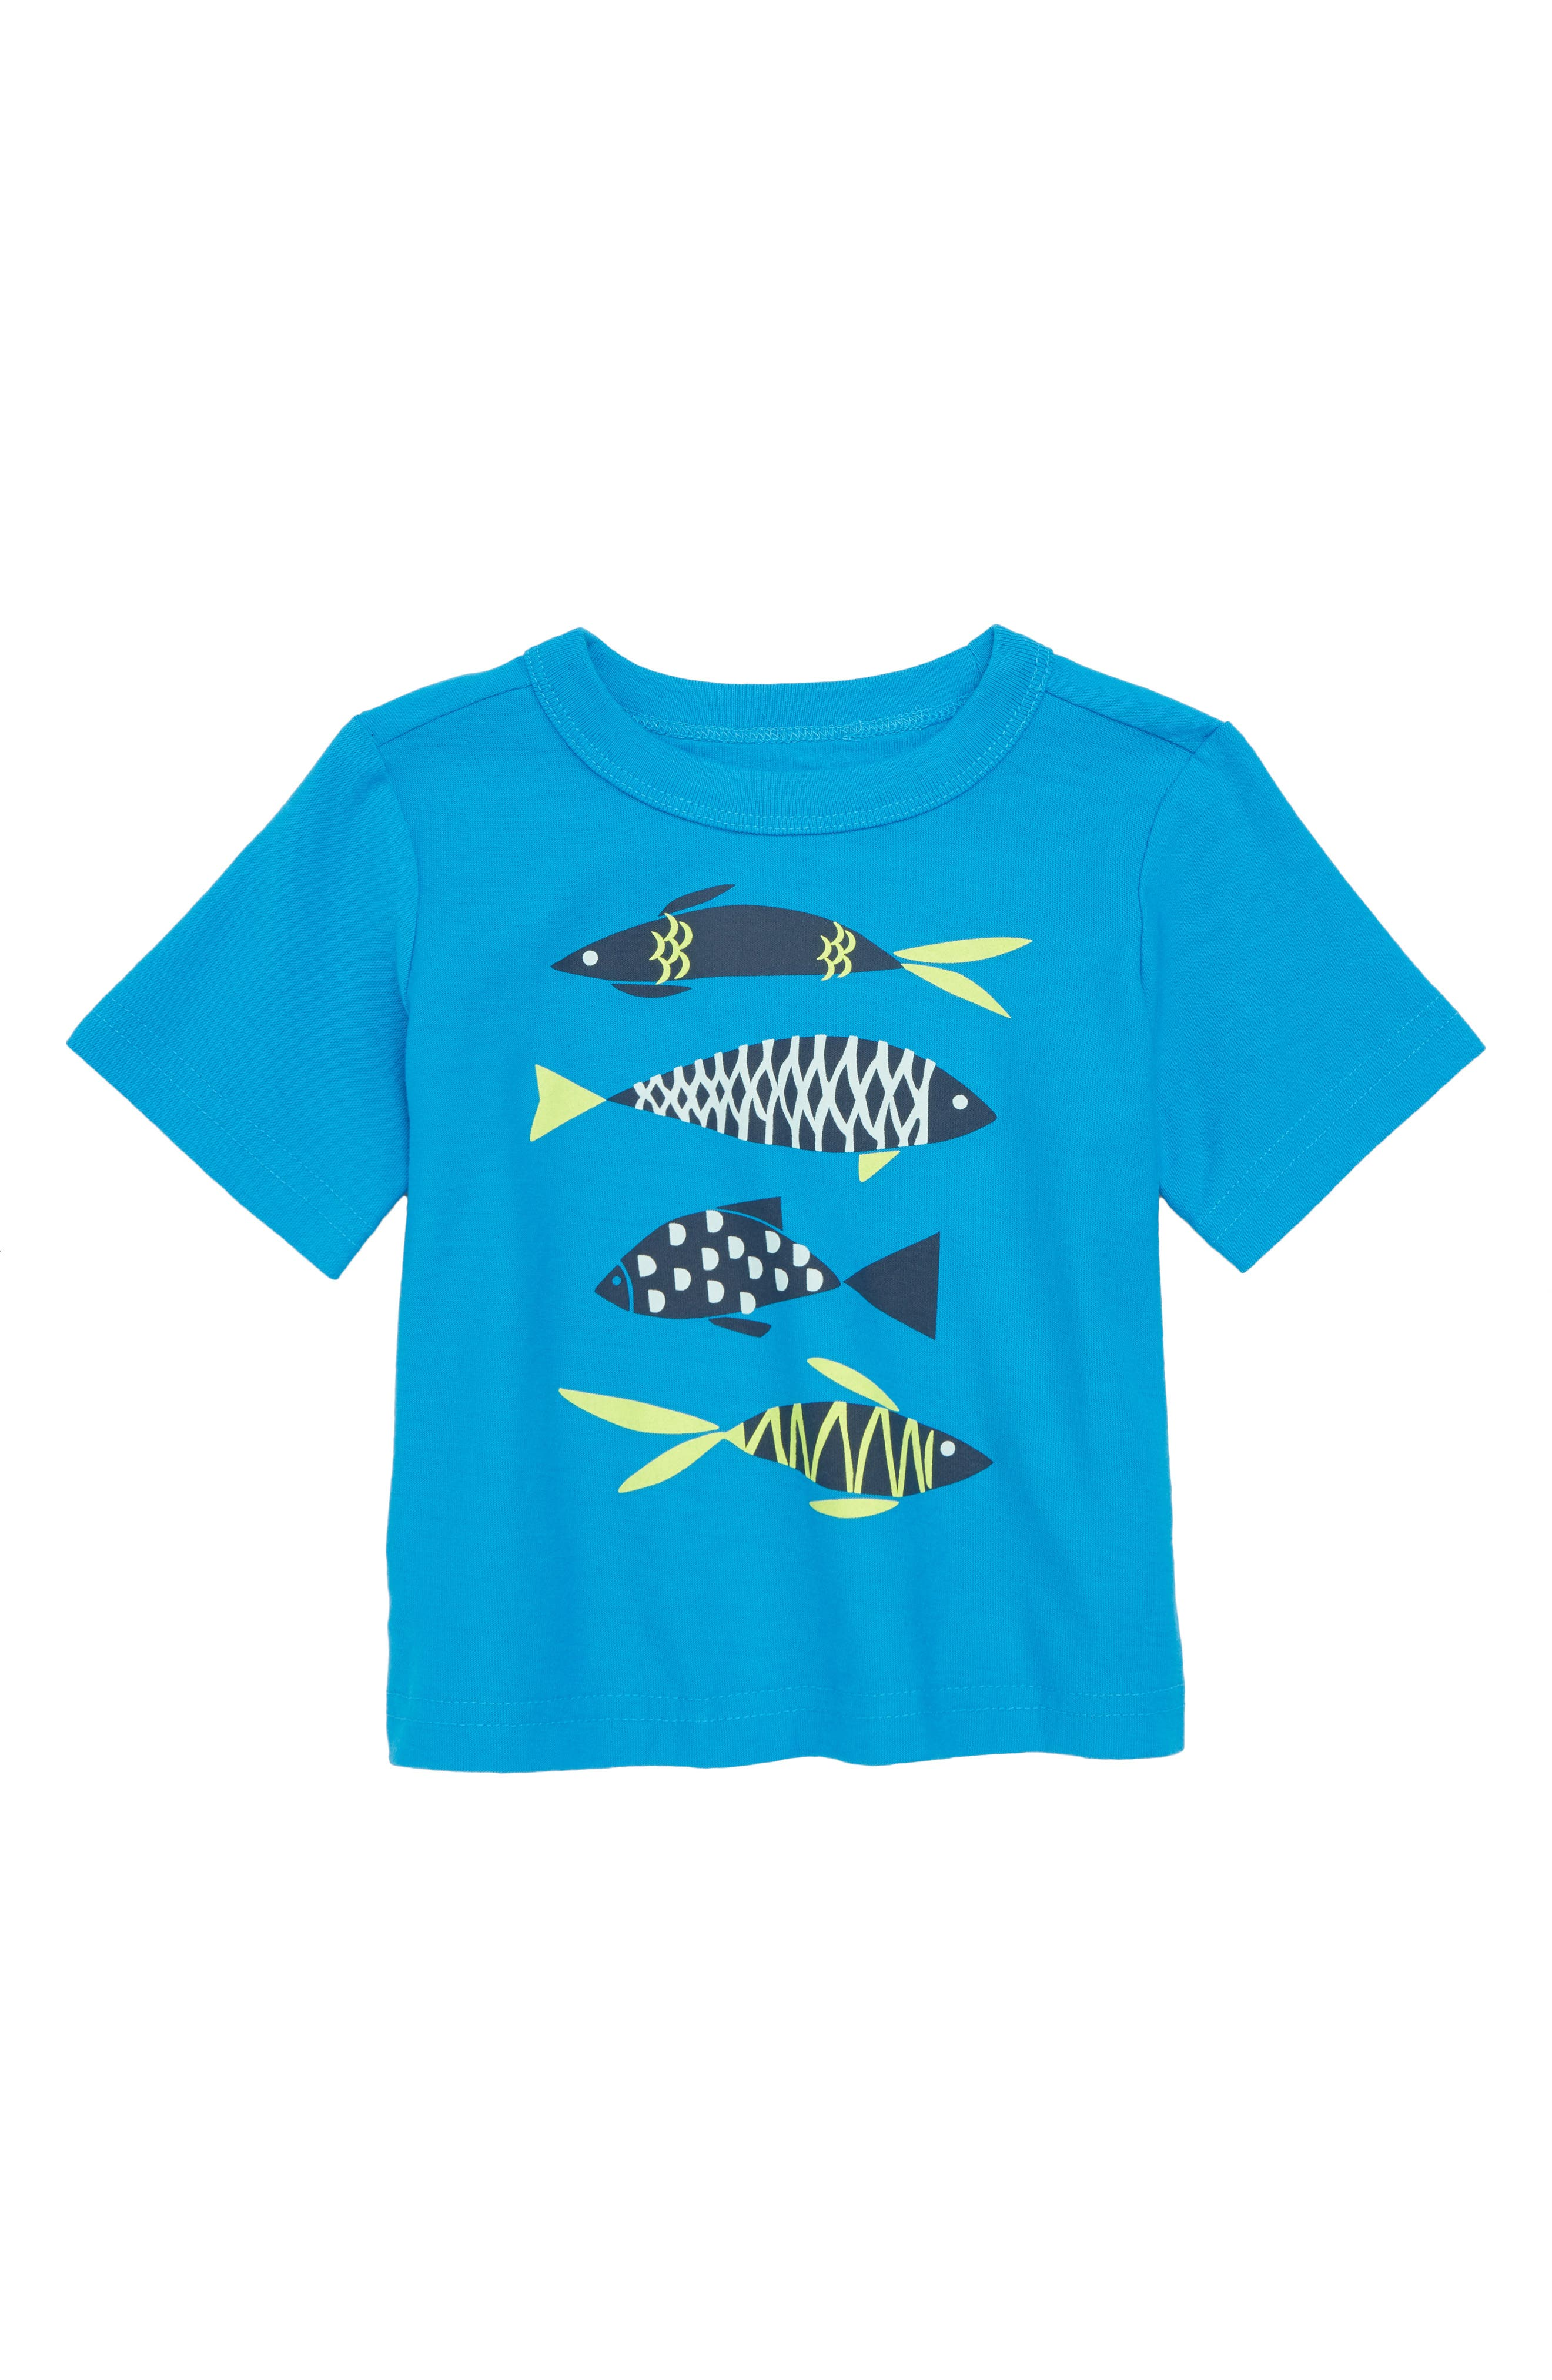 School of Fish Graphic T-Shirt,                             Main thumbnail 1, color,                             Tropic